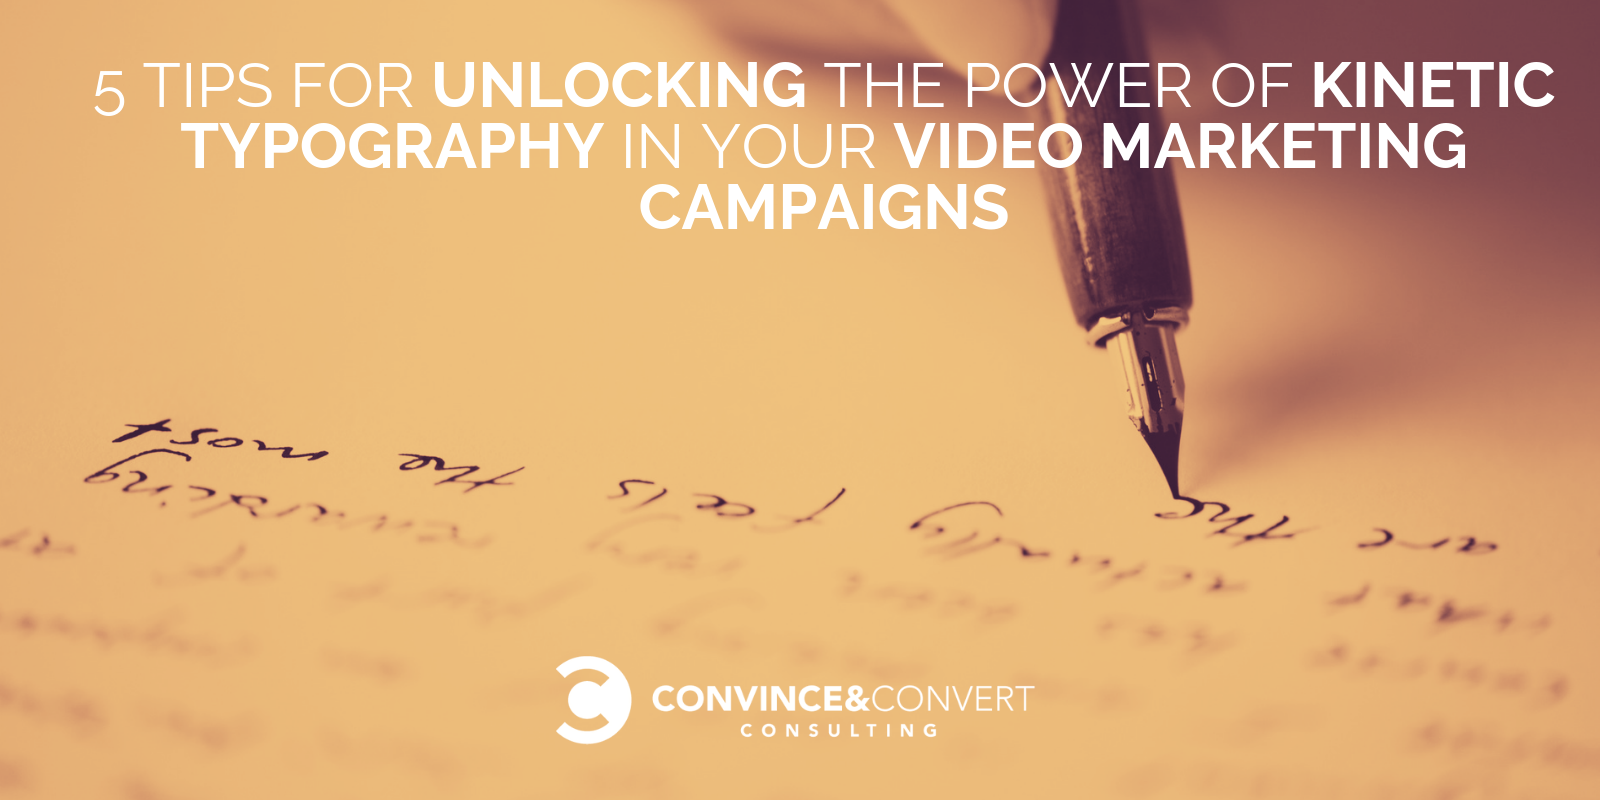 5 Tips for Unlocking the Power of Kinetic Typography in Your Video Marketing Campaigns